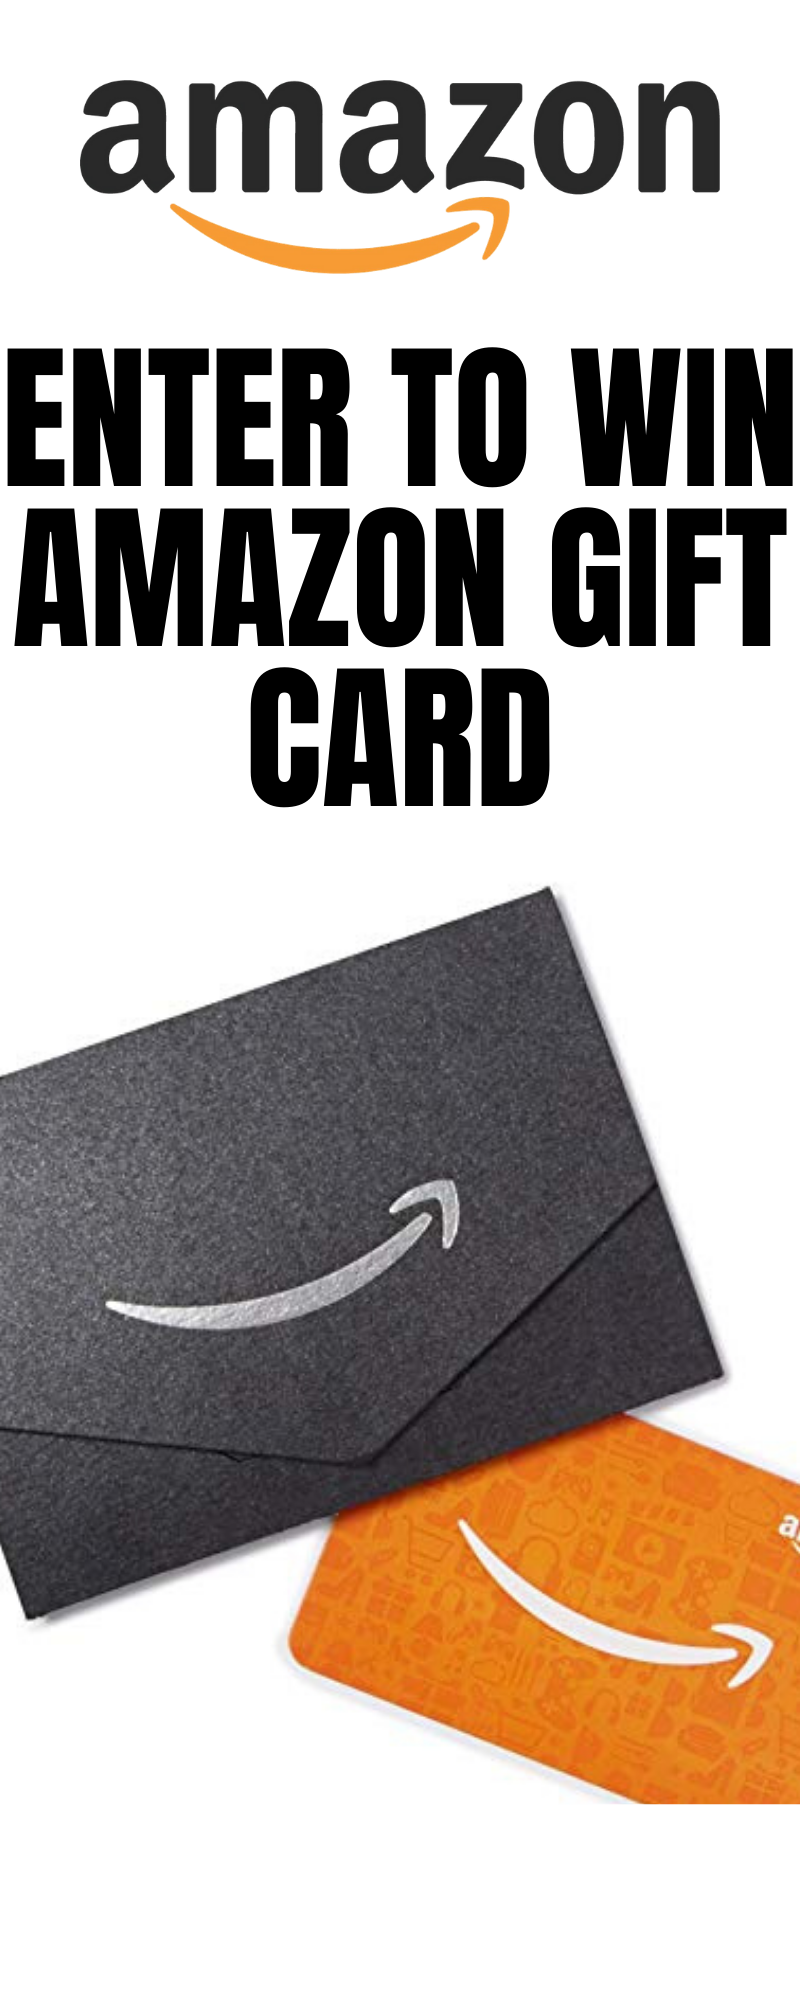 Take A Quick Survey From The People Platform Regarding Gas Station Advertisements To Score A Free Amazon Or Amazon Gift Cards Amazon Gifts Free Amazon Products